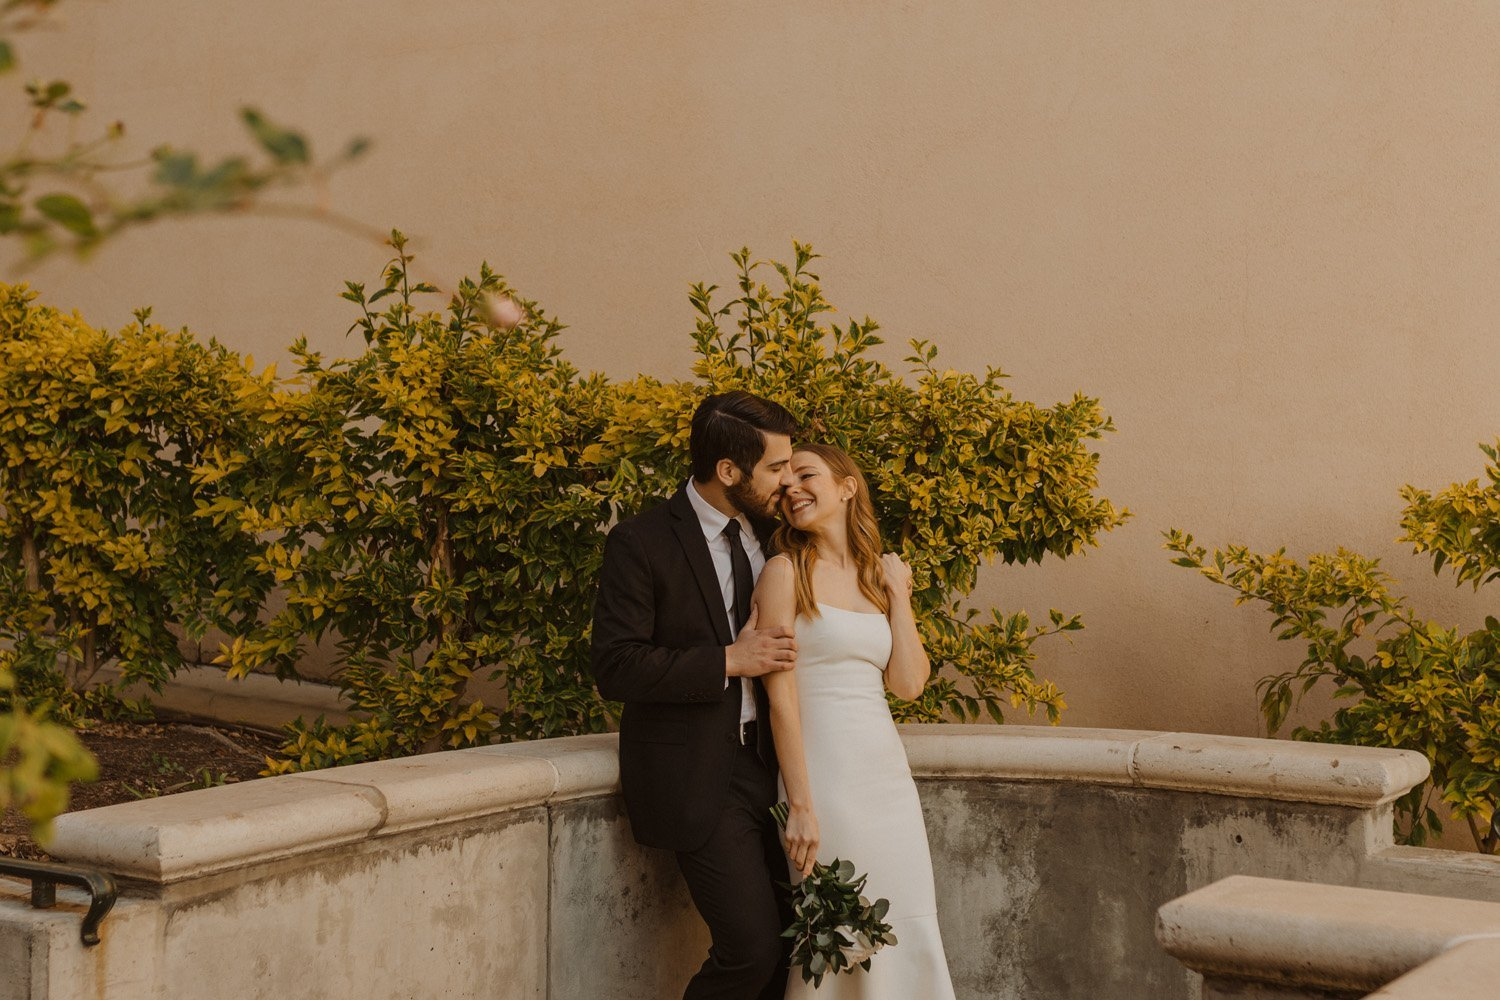 Bride and groom embracing at their Balboa Park wedding.